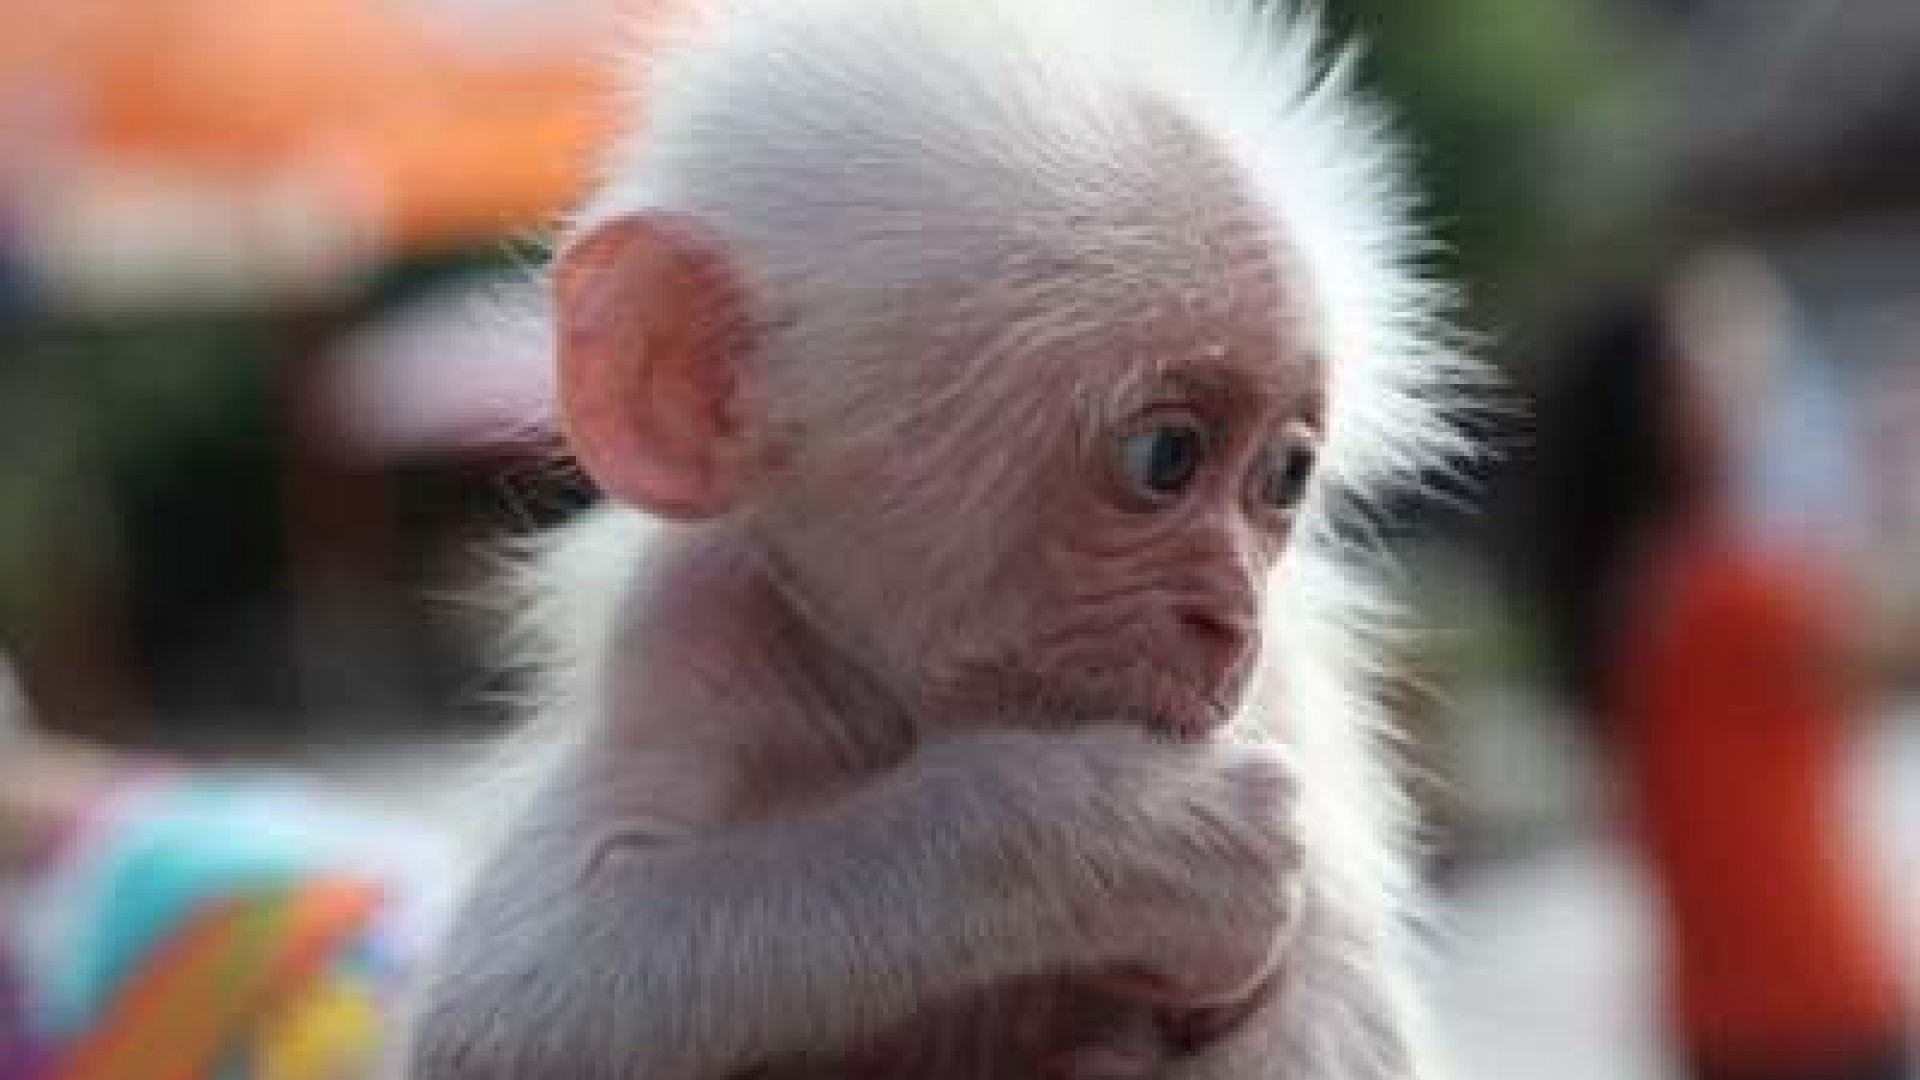 1920x1080 HD Images, HD Pictures, Backgrounds, Desktop Wallpapers - hd wallpaper ...  baby funny monkey ...